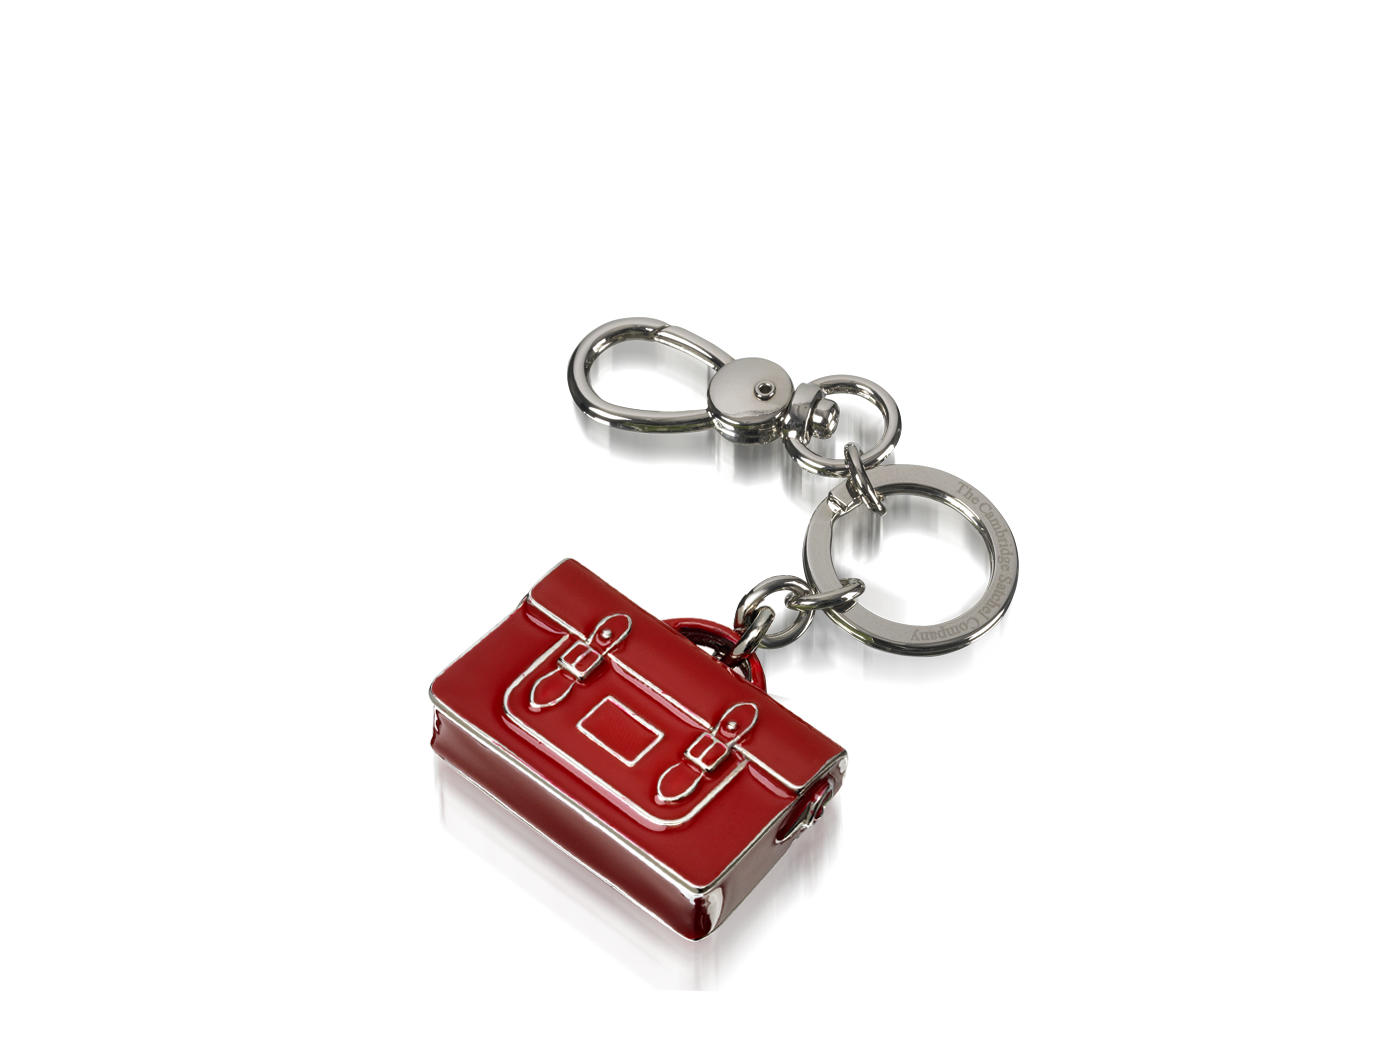 20% Off+Free Red Enamel Keychain @ The Cambridge Satchel Company, Dealmoon Golden Week Exclusive!